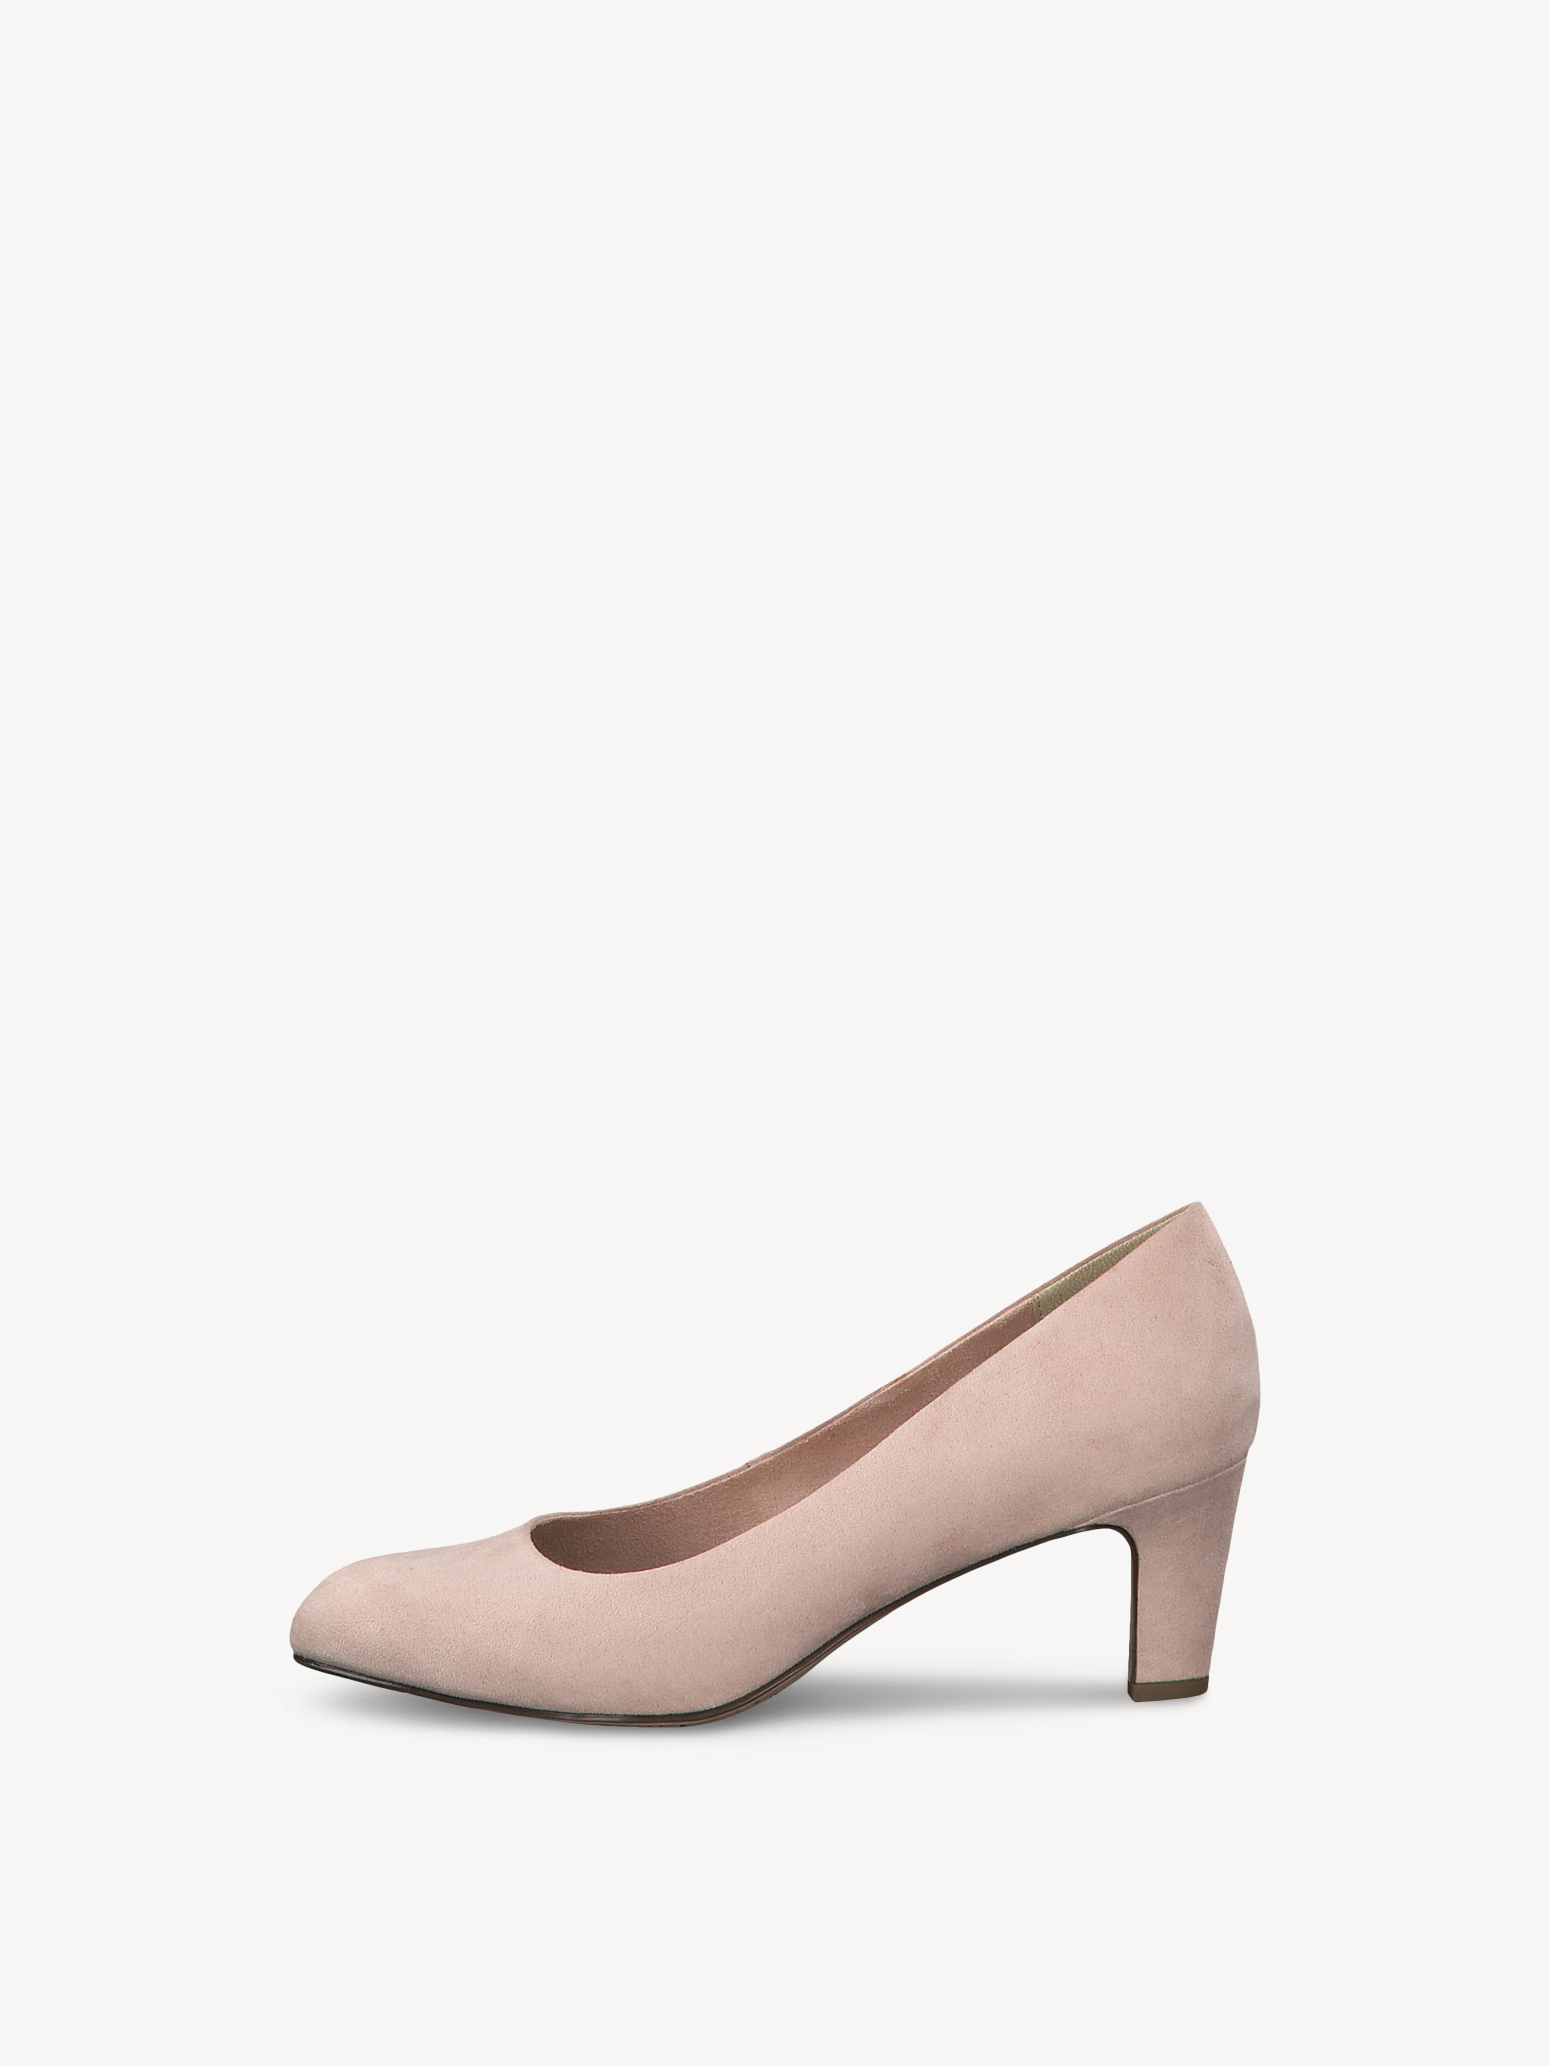 Details zu Tamaris Pumps rose rosa beige 39